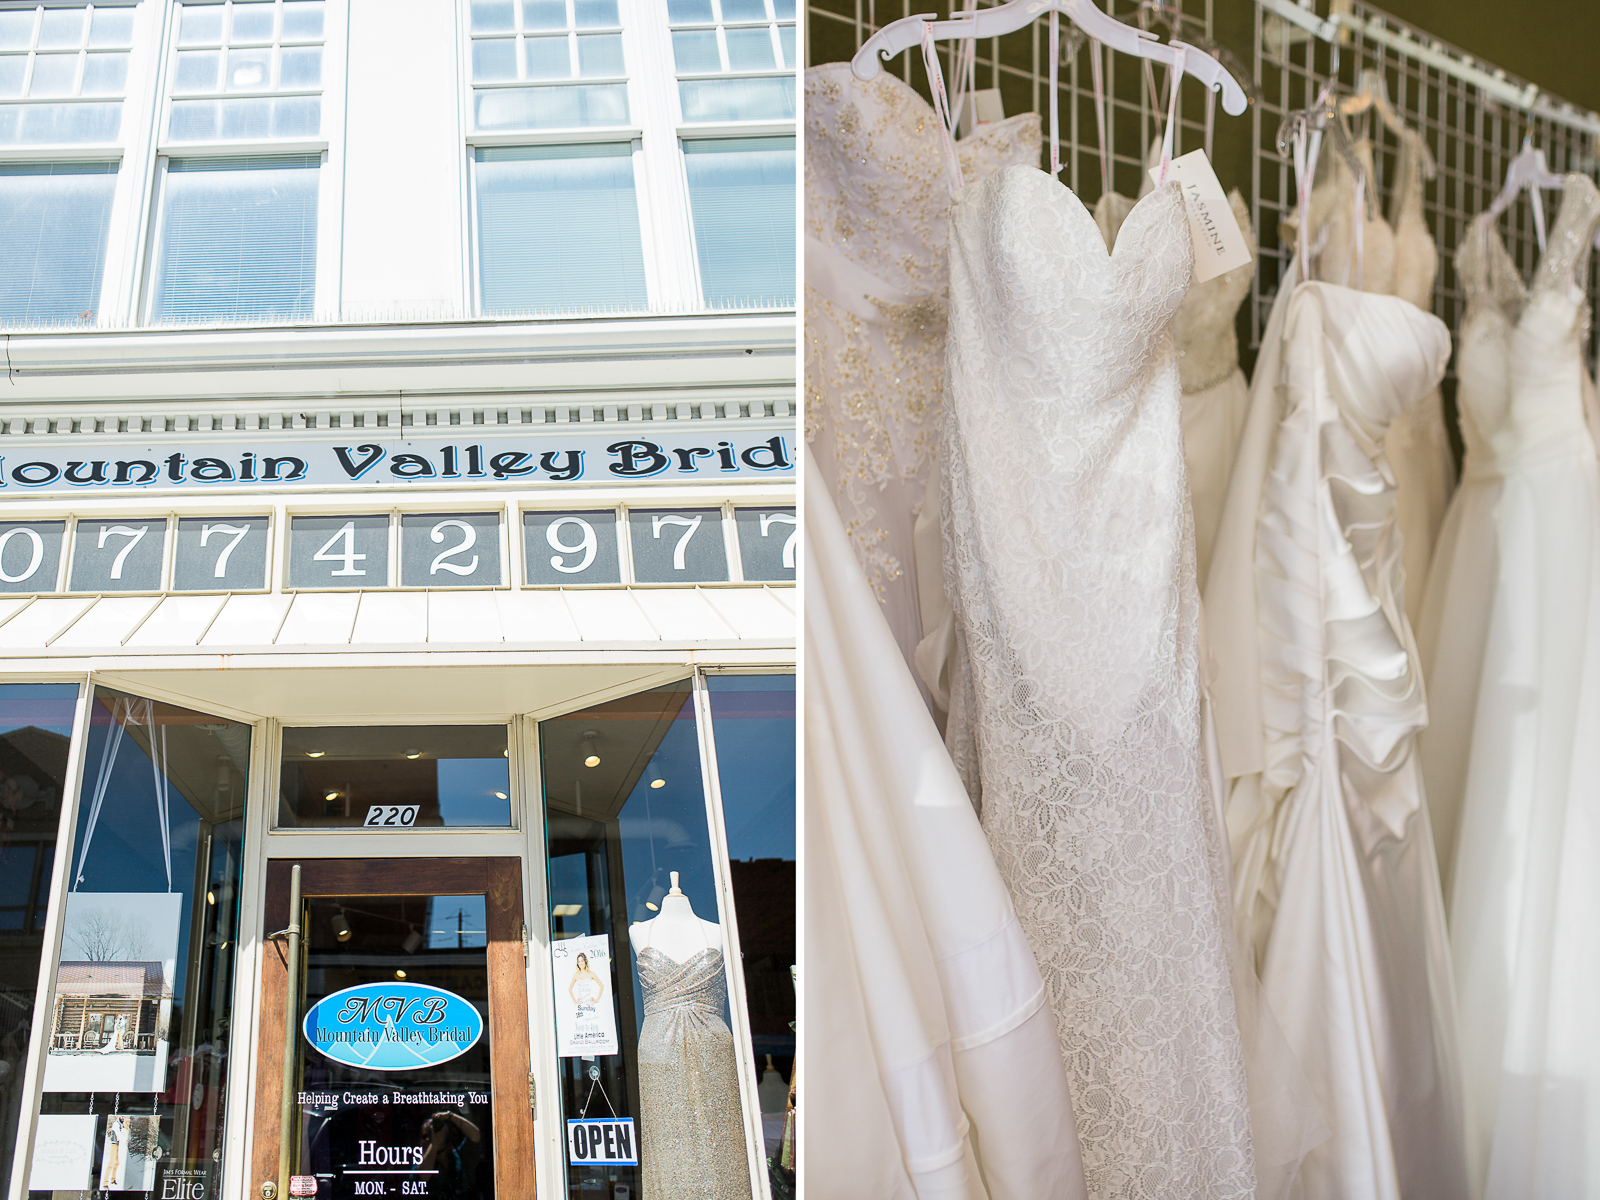 Mountain Valley Bridal in Downtown Laramie Wyoming is no exception. The pretty storefront and beautiful selection inside is perfect for any Wyoming Bride!